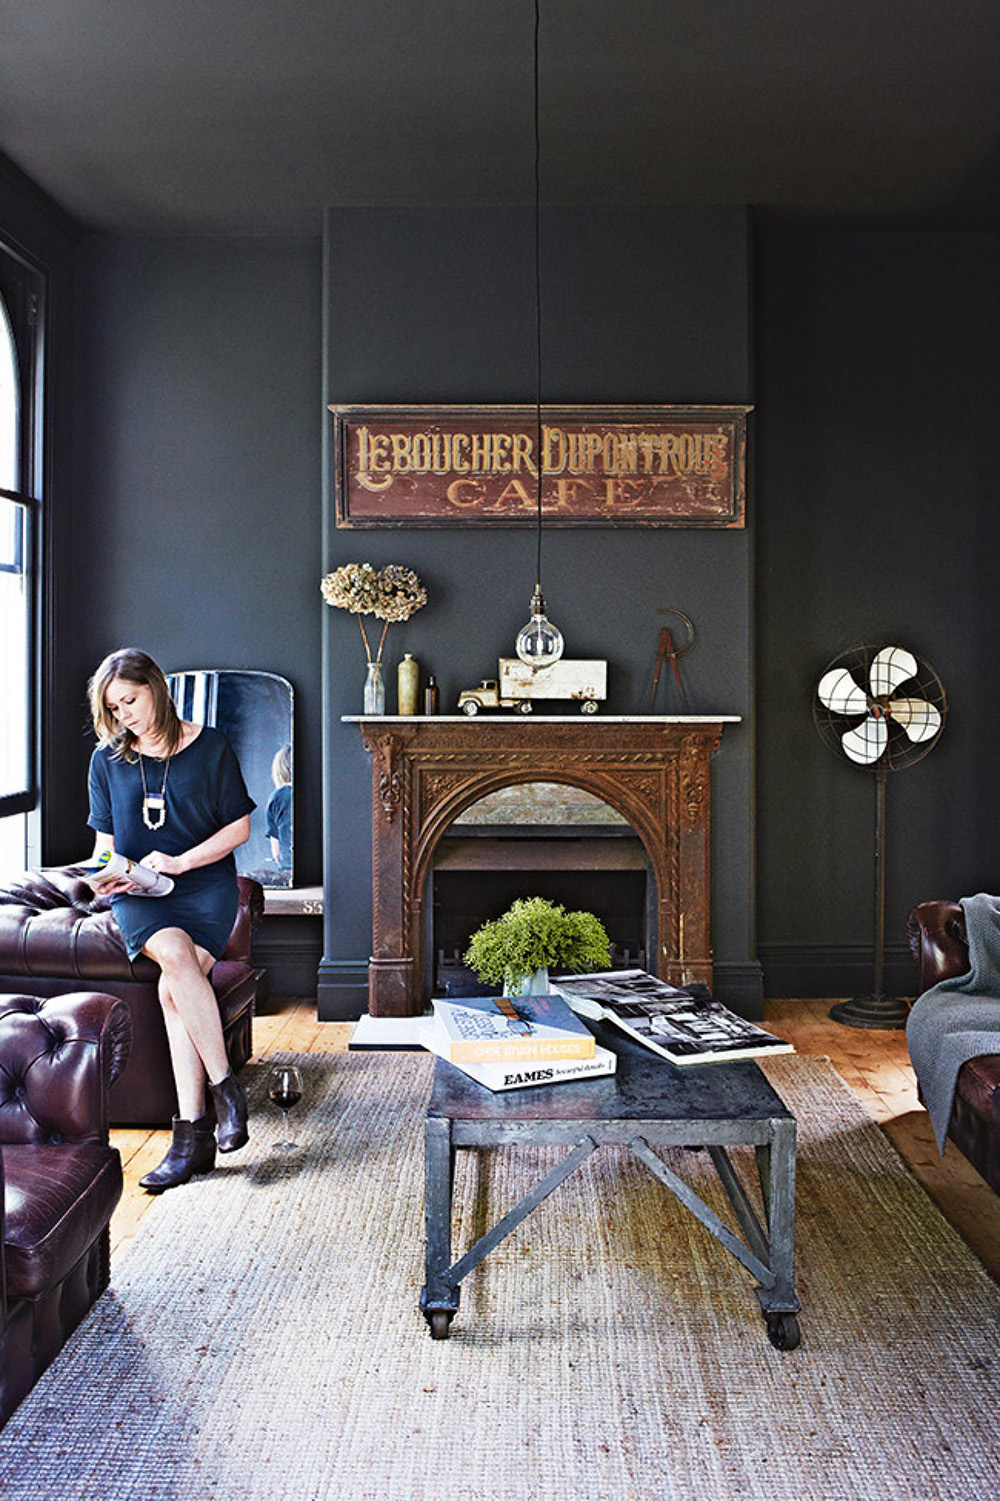 black-walls-fireplace-living-room-mar14-20150401102117~q75,dx1920y-u1r1g0